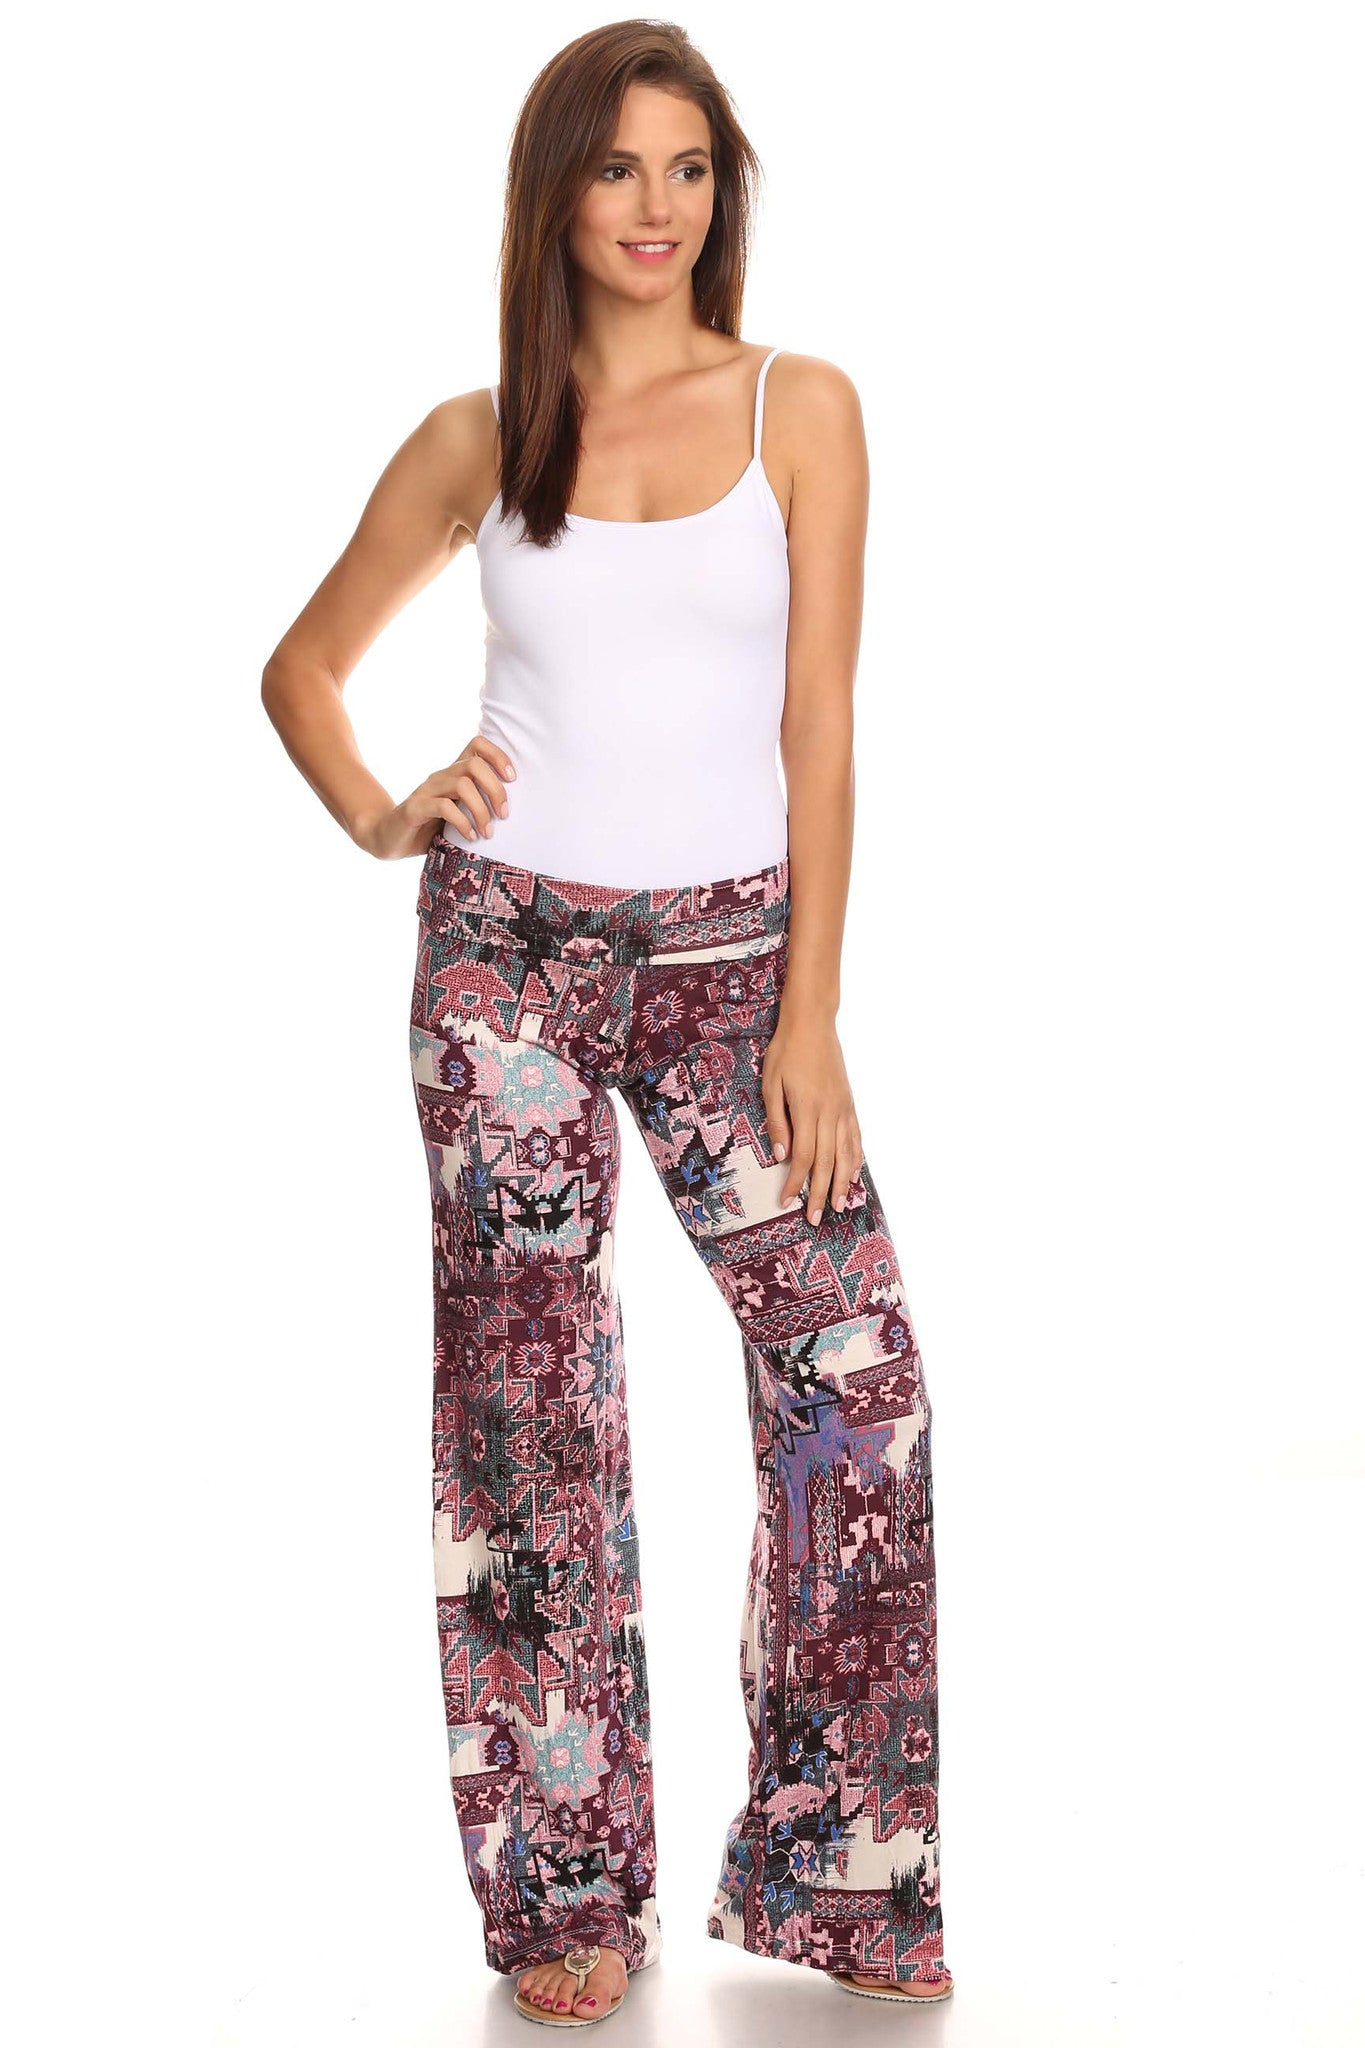 69c9dd0181f ... Women s Printed Palazzo Pants Made in USA-Pants-Sharon s Outlet-DAMASK  BLACK- ...